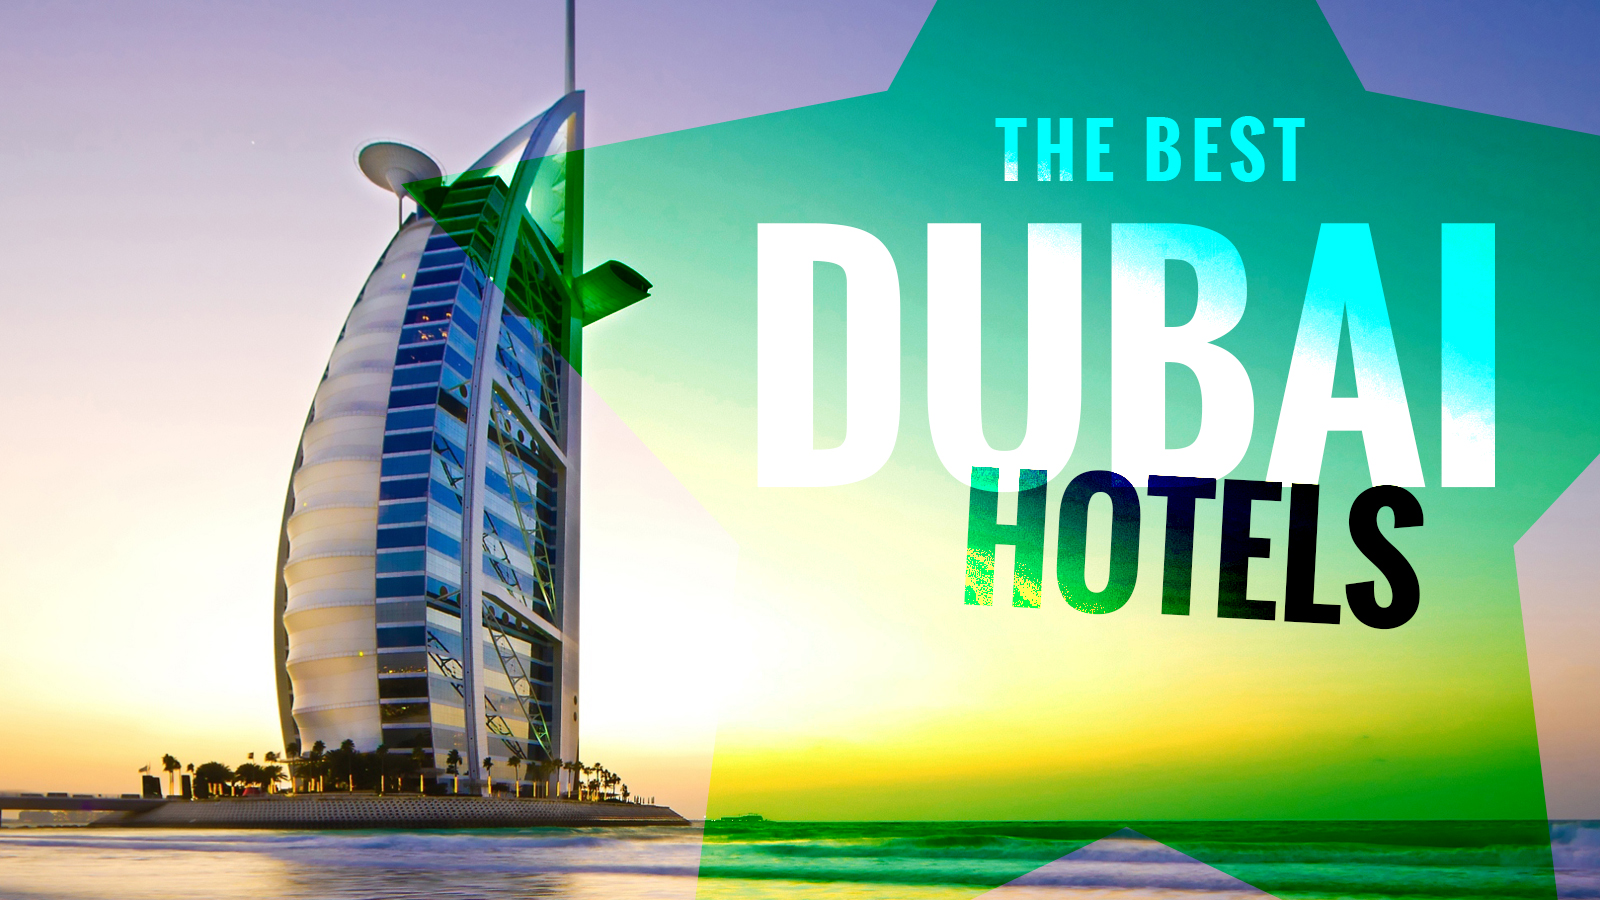 Burj Al Arab, Best Dubai Hotels